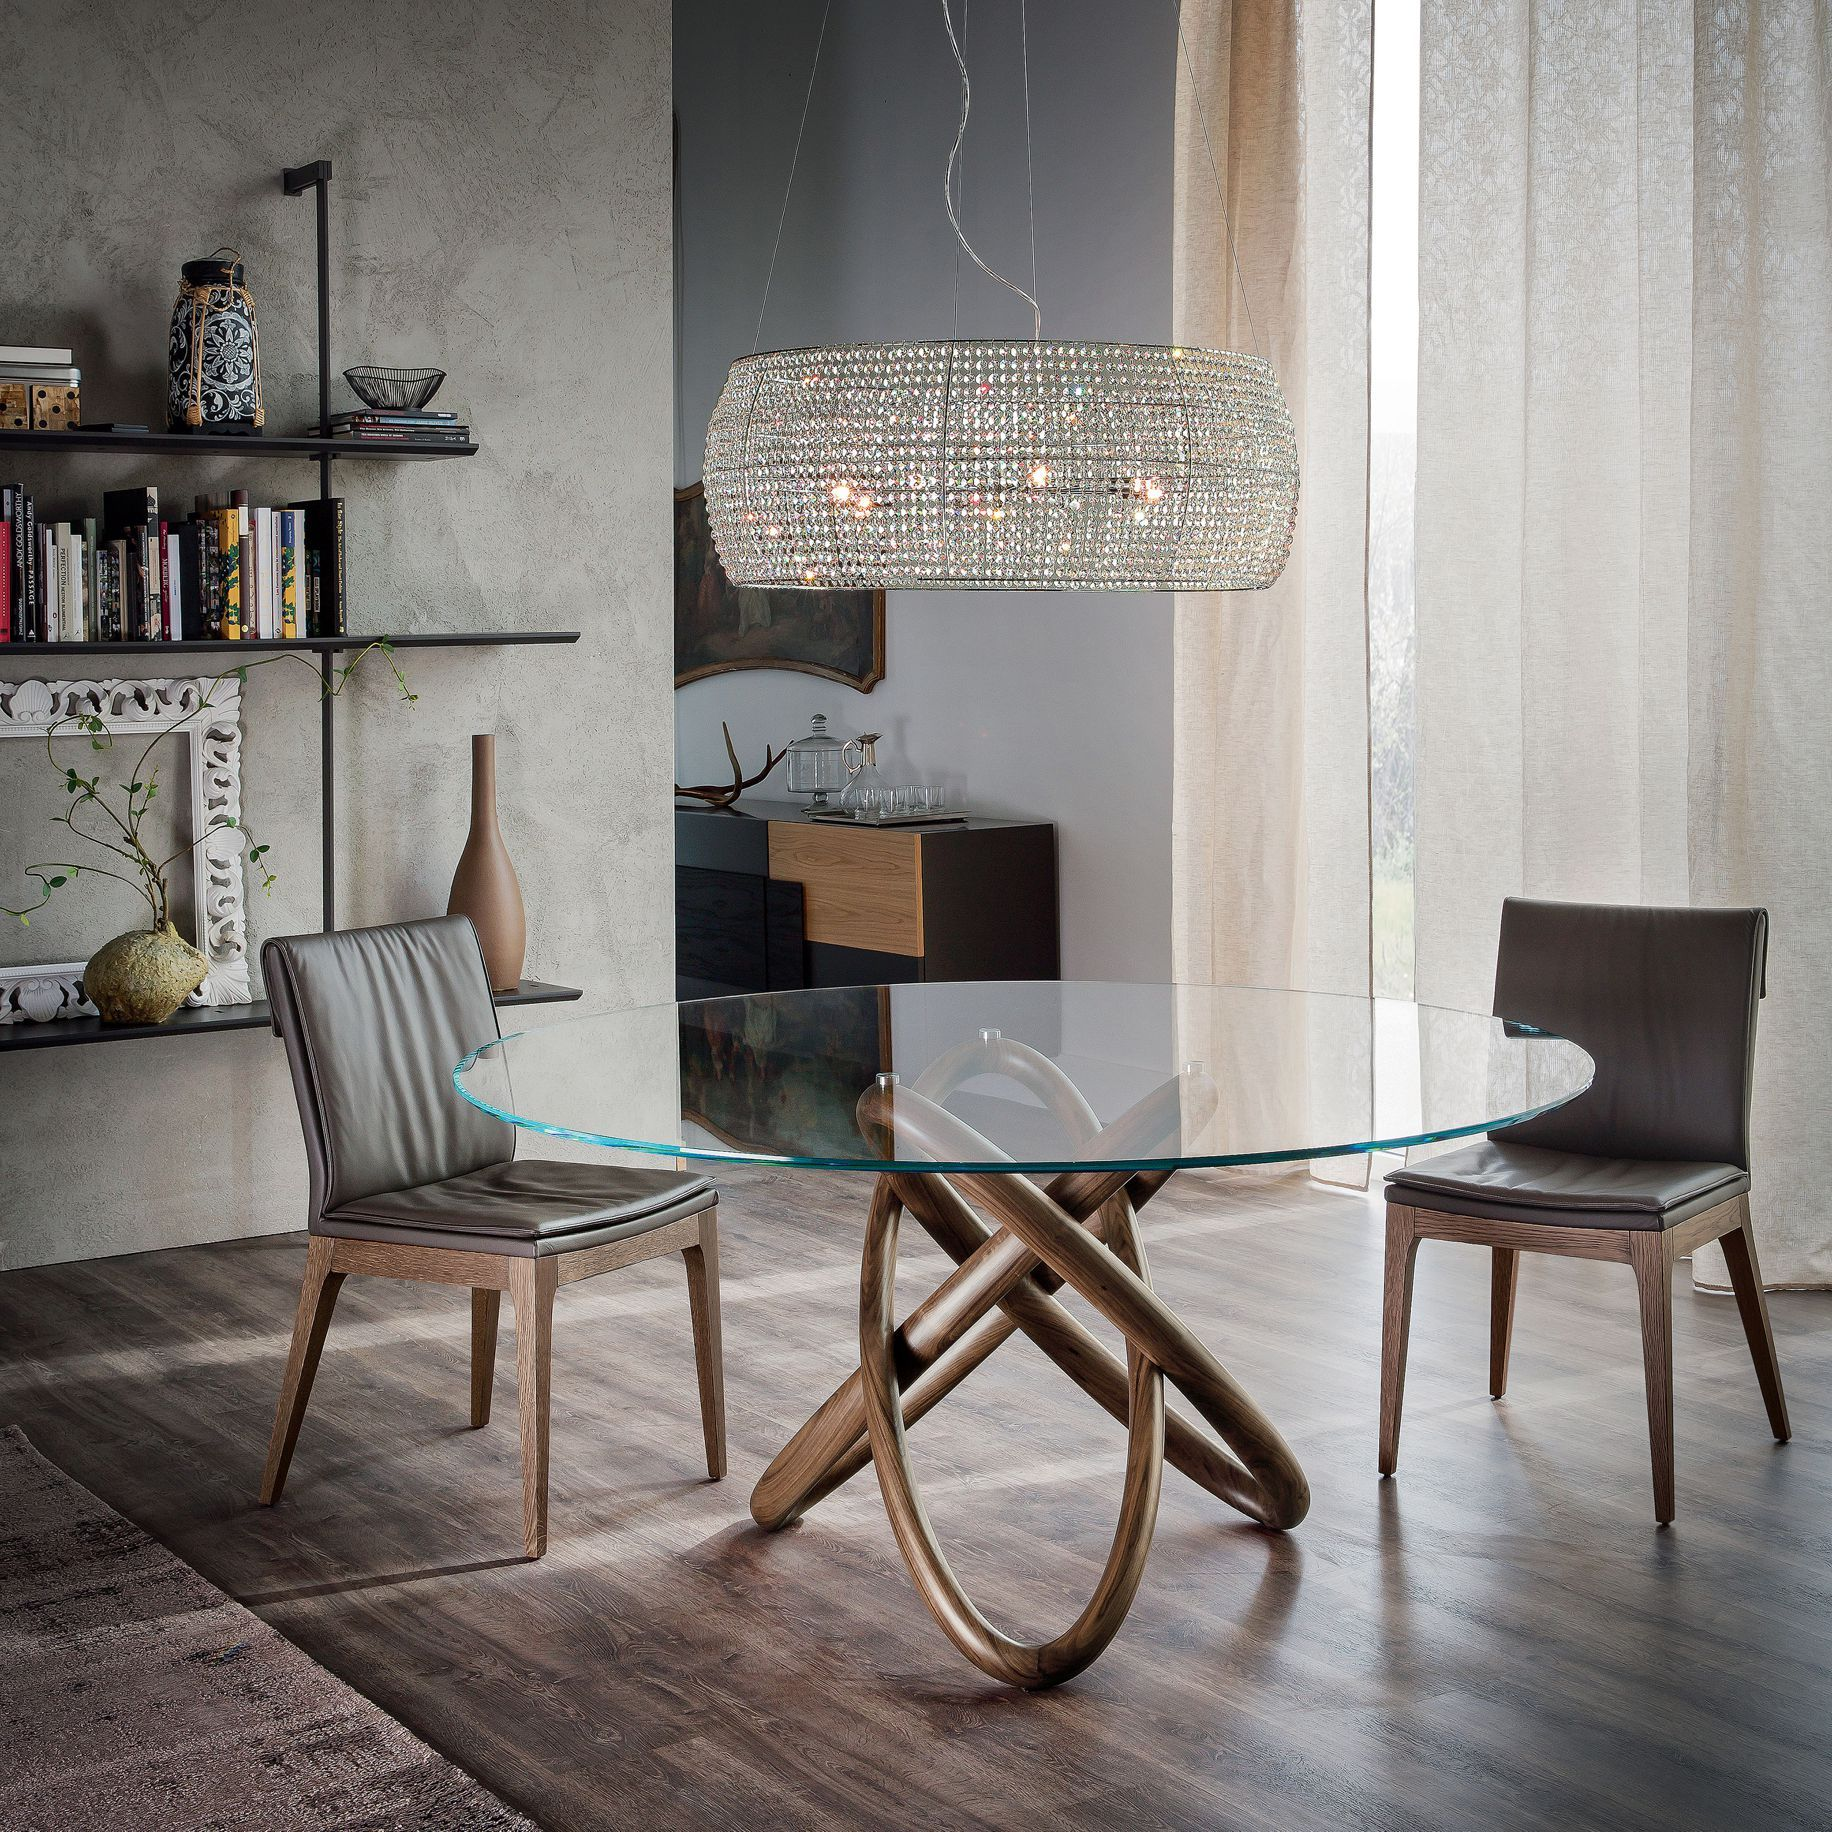 Carioca Modern Dining Table By Cattelan Italia Designed By Andrea - Stylish-dining-rooms-from-cattelan-italia